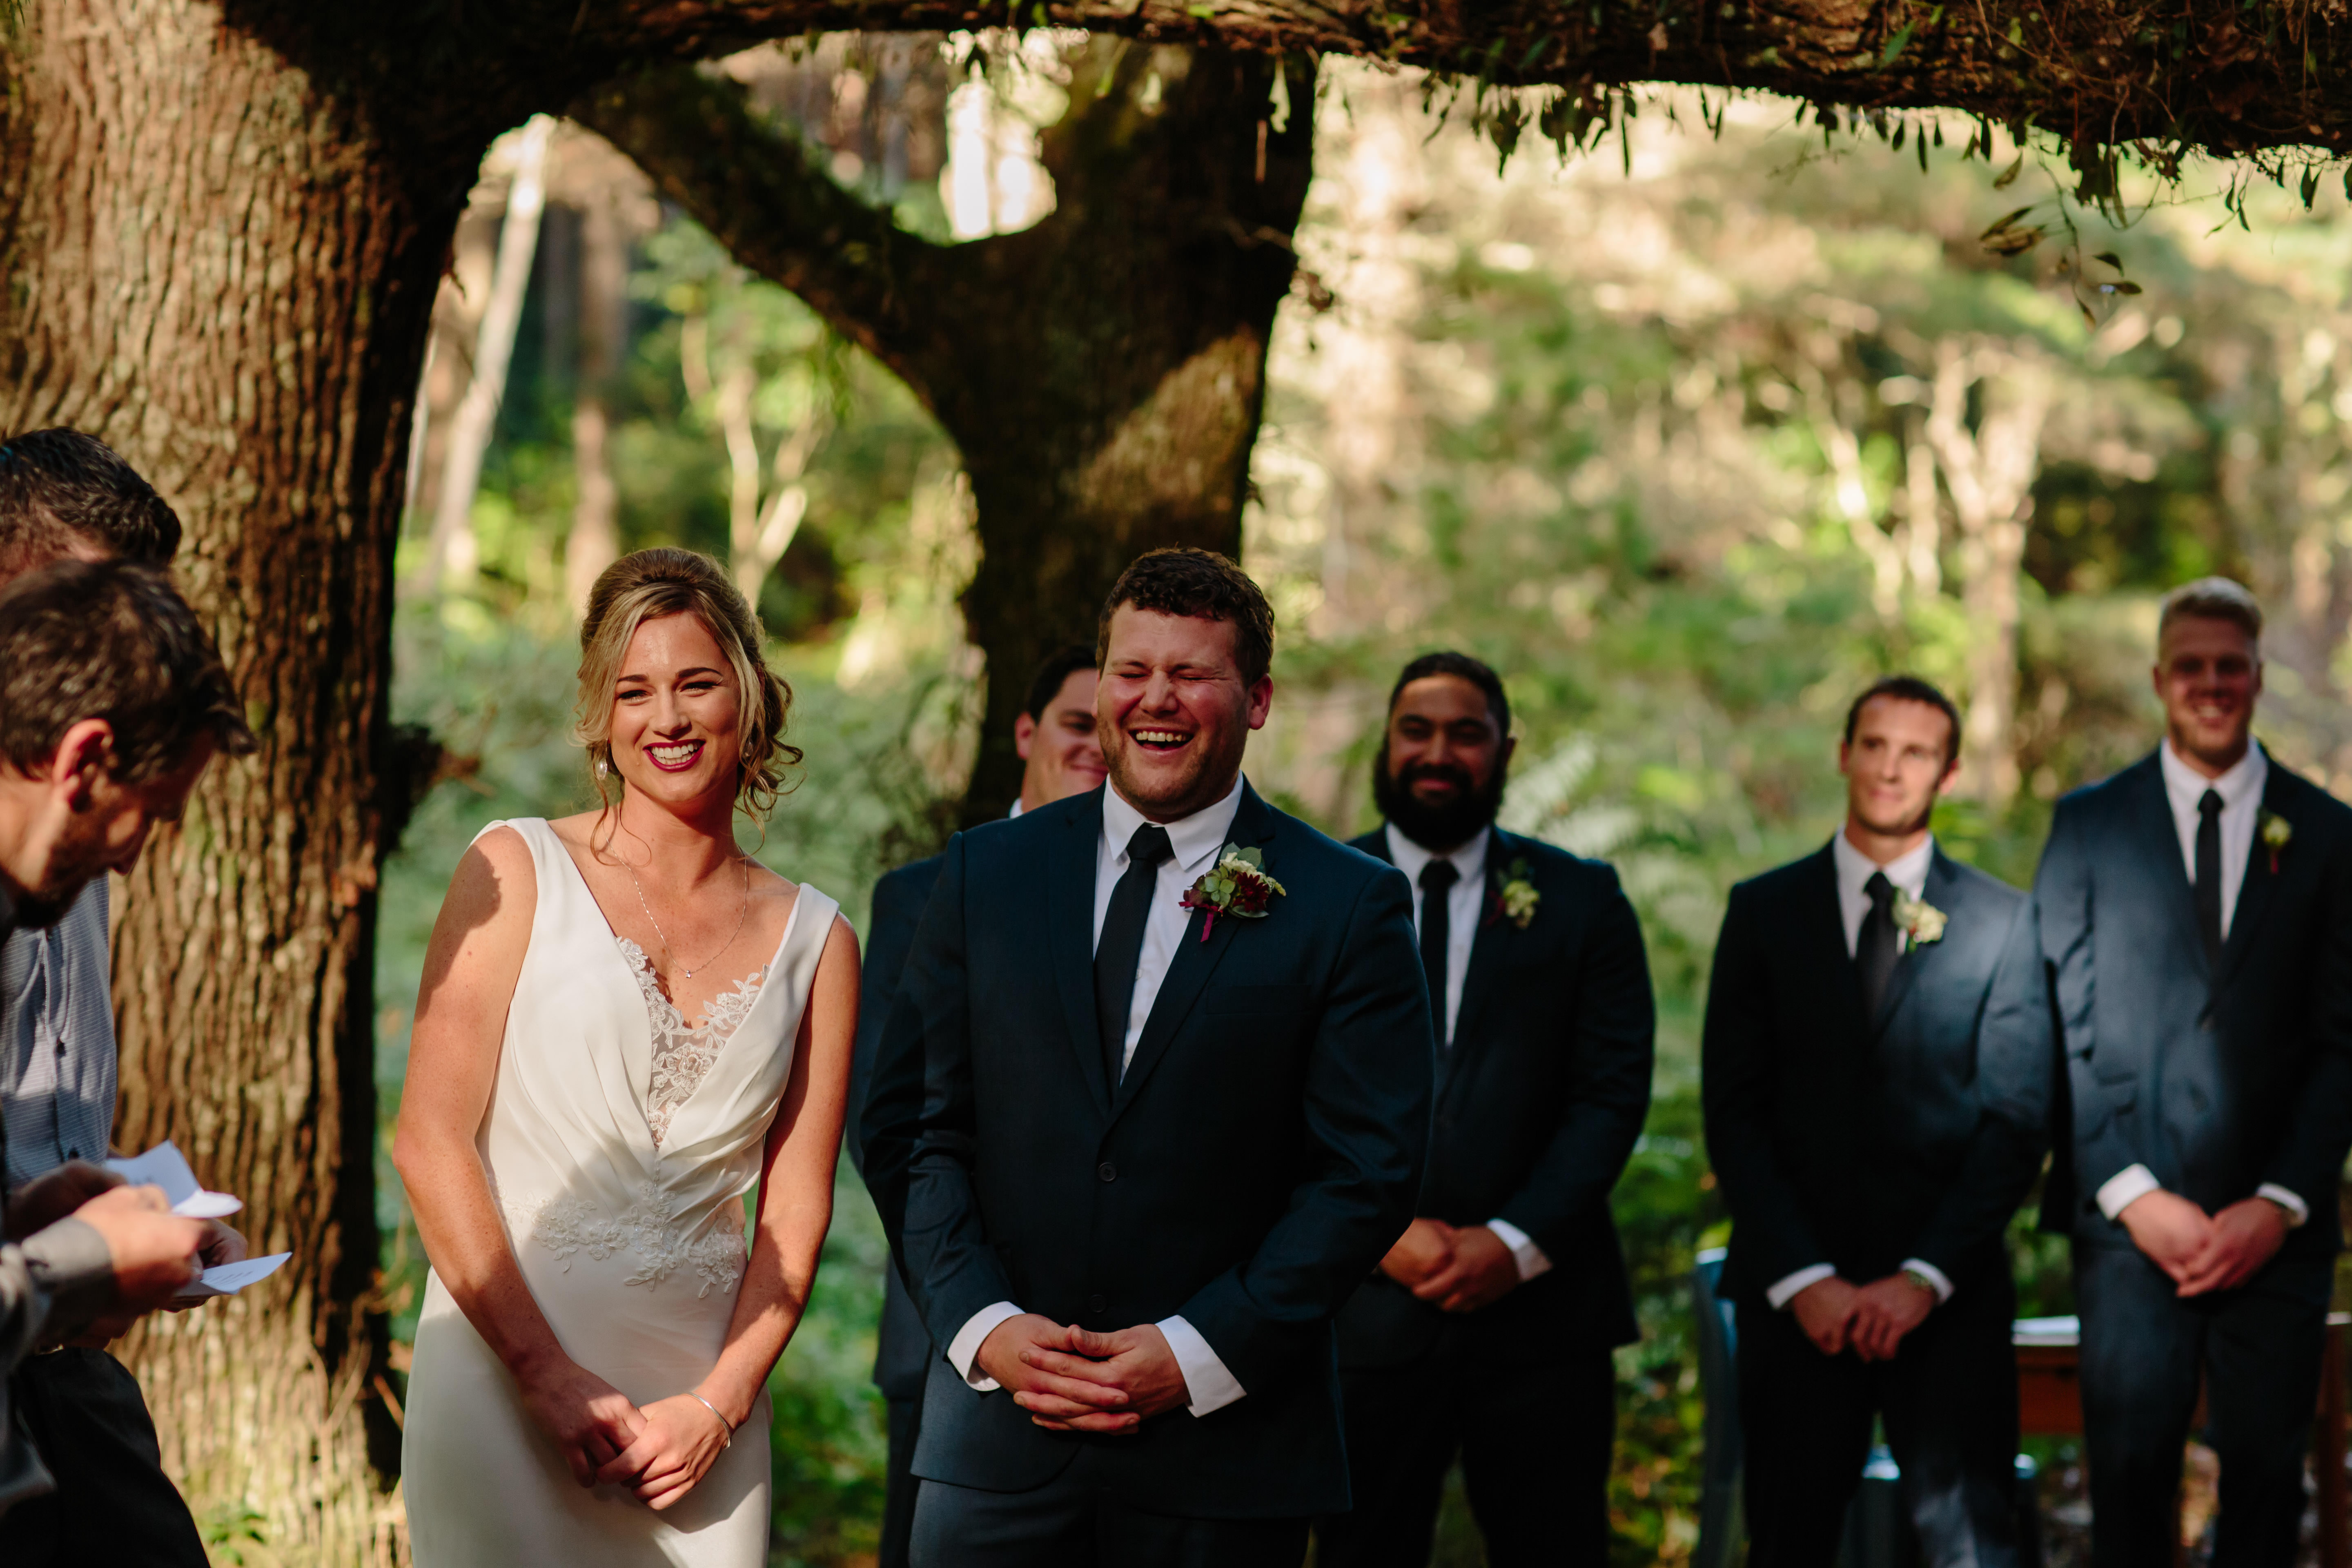 jo-mike-wedding-the-official-photographers_top_7678